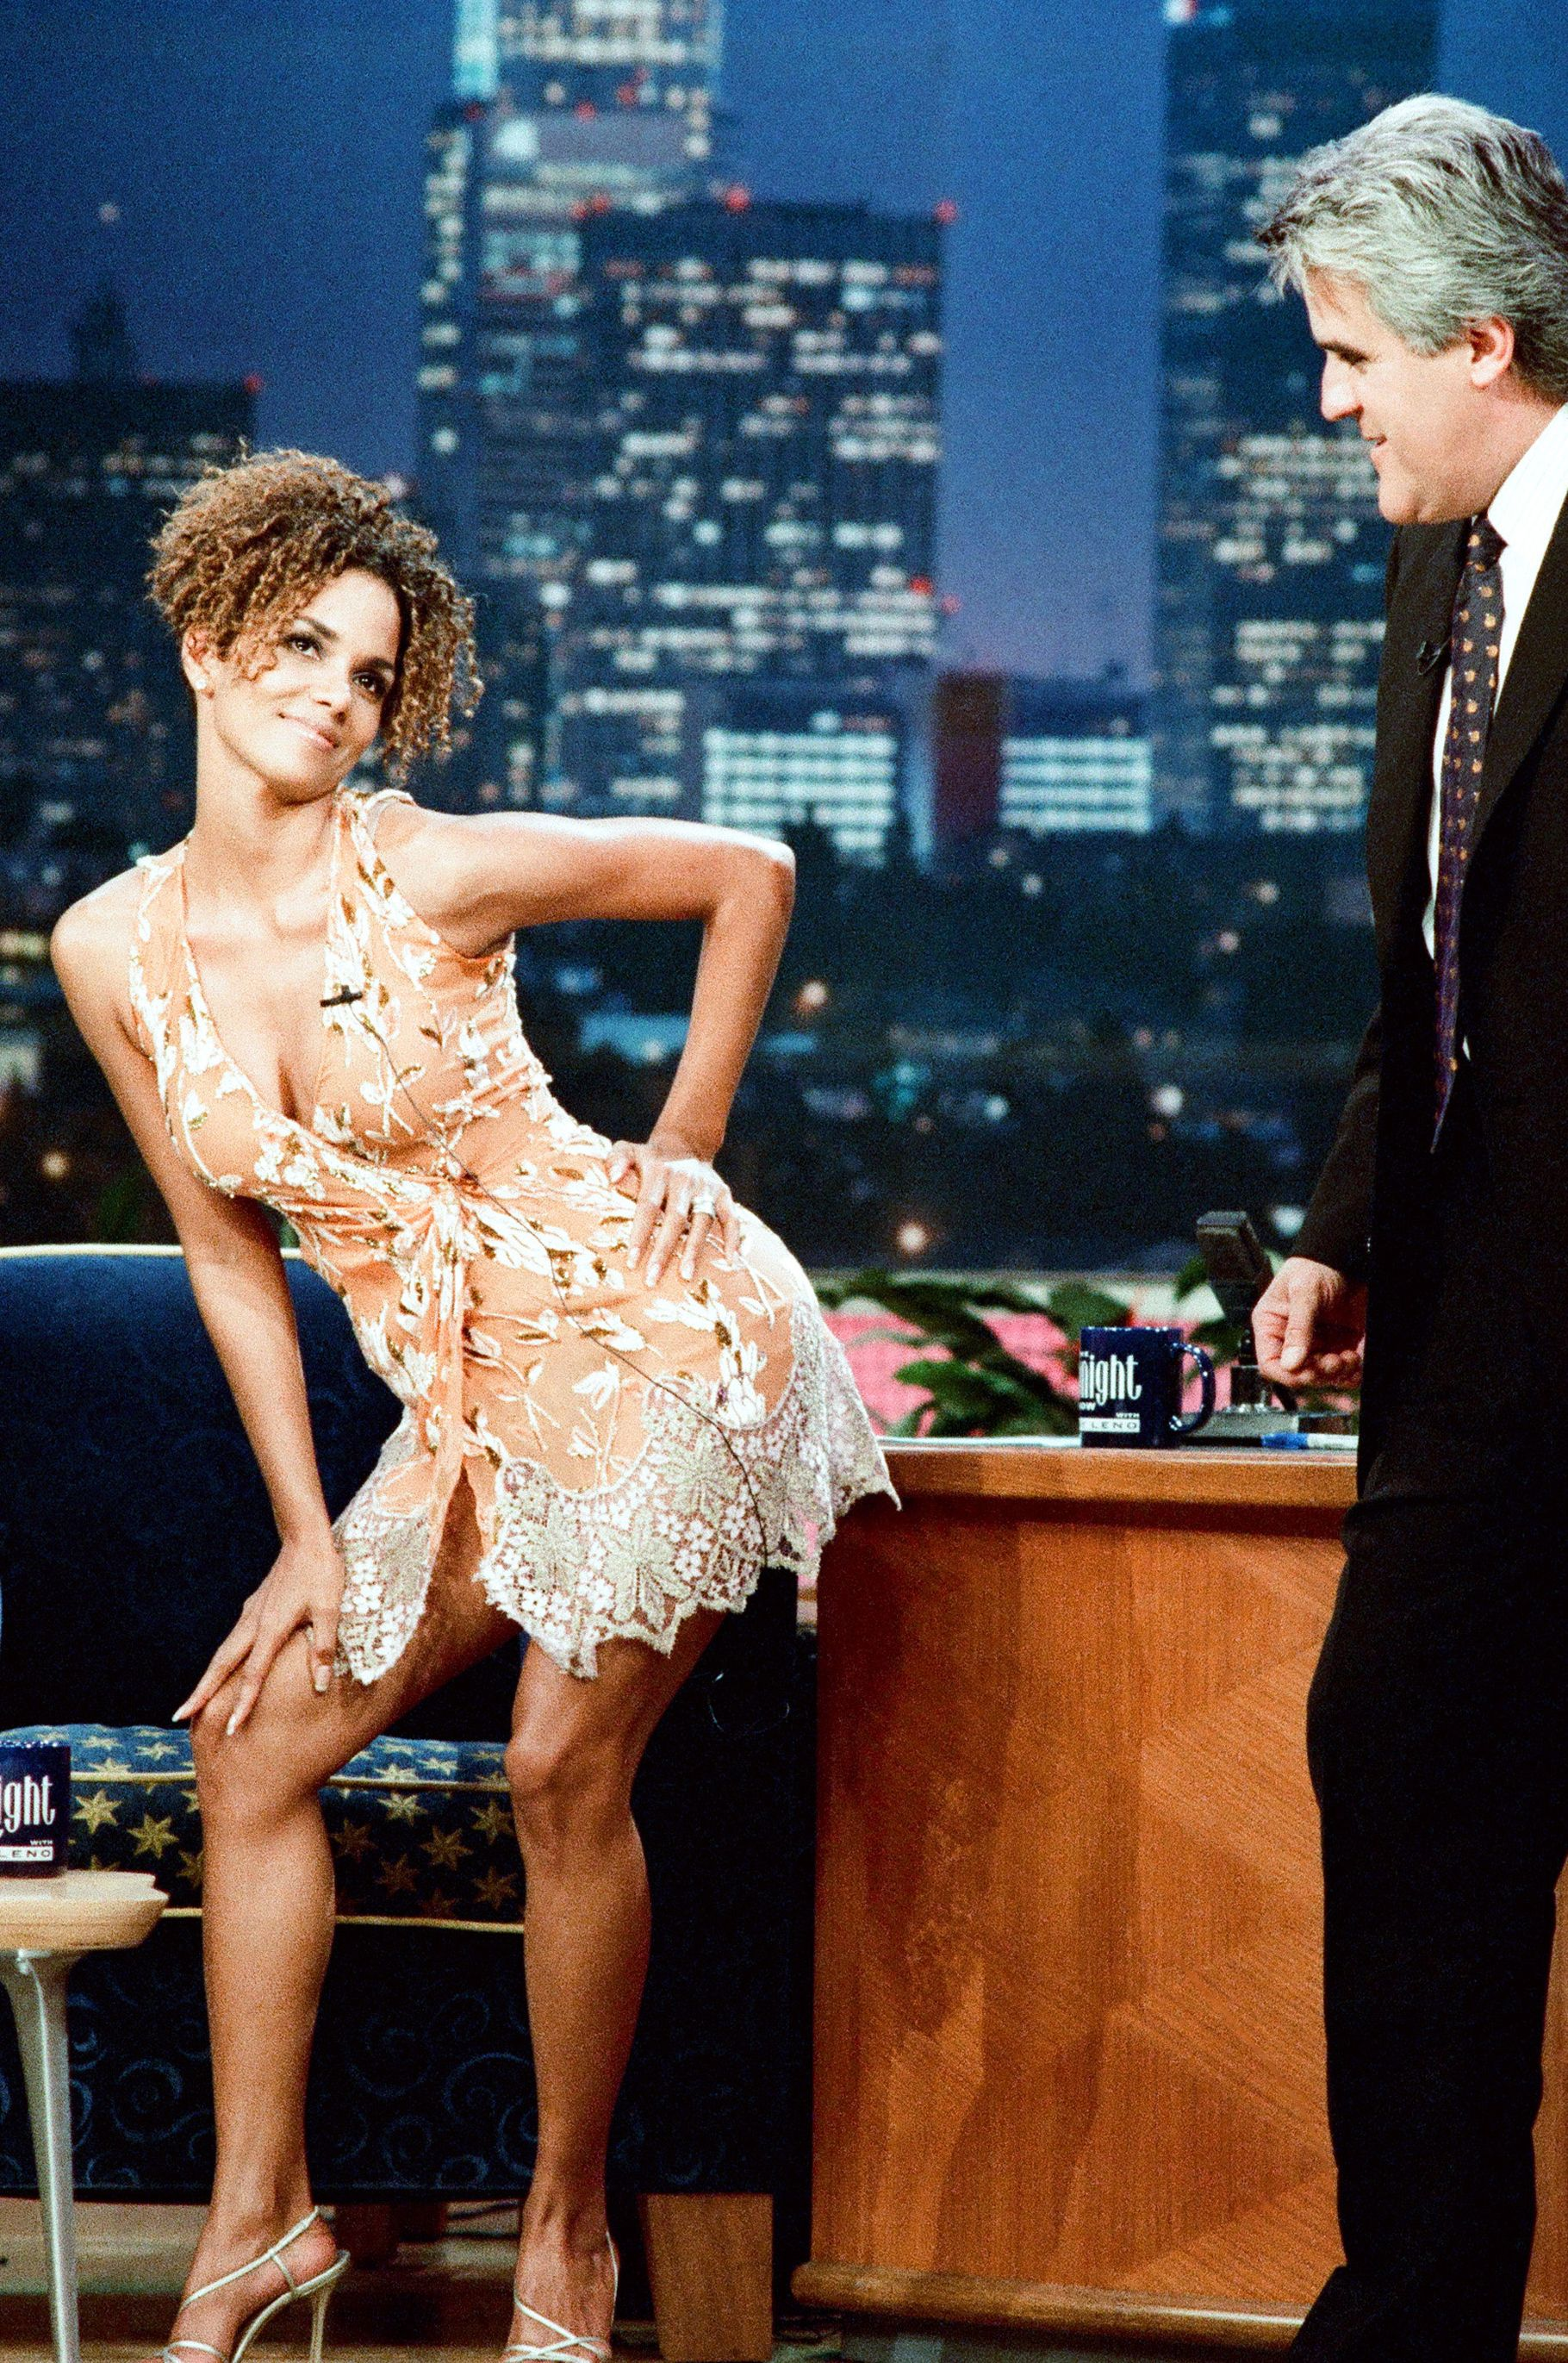 Late Night Fun With Leno Interviews with late night TV hosts have always given celebs a chance to be charming and fun. That is what Halle embodies in this 1991 appearance on the Tonight Show With Jay Leno .